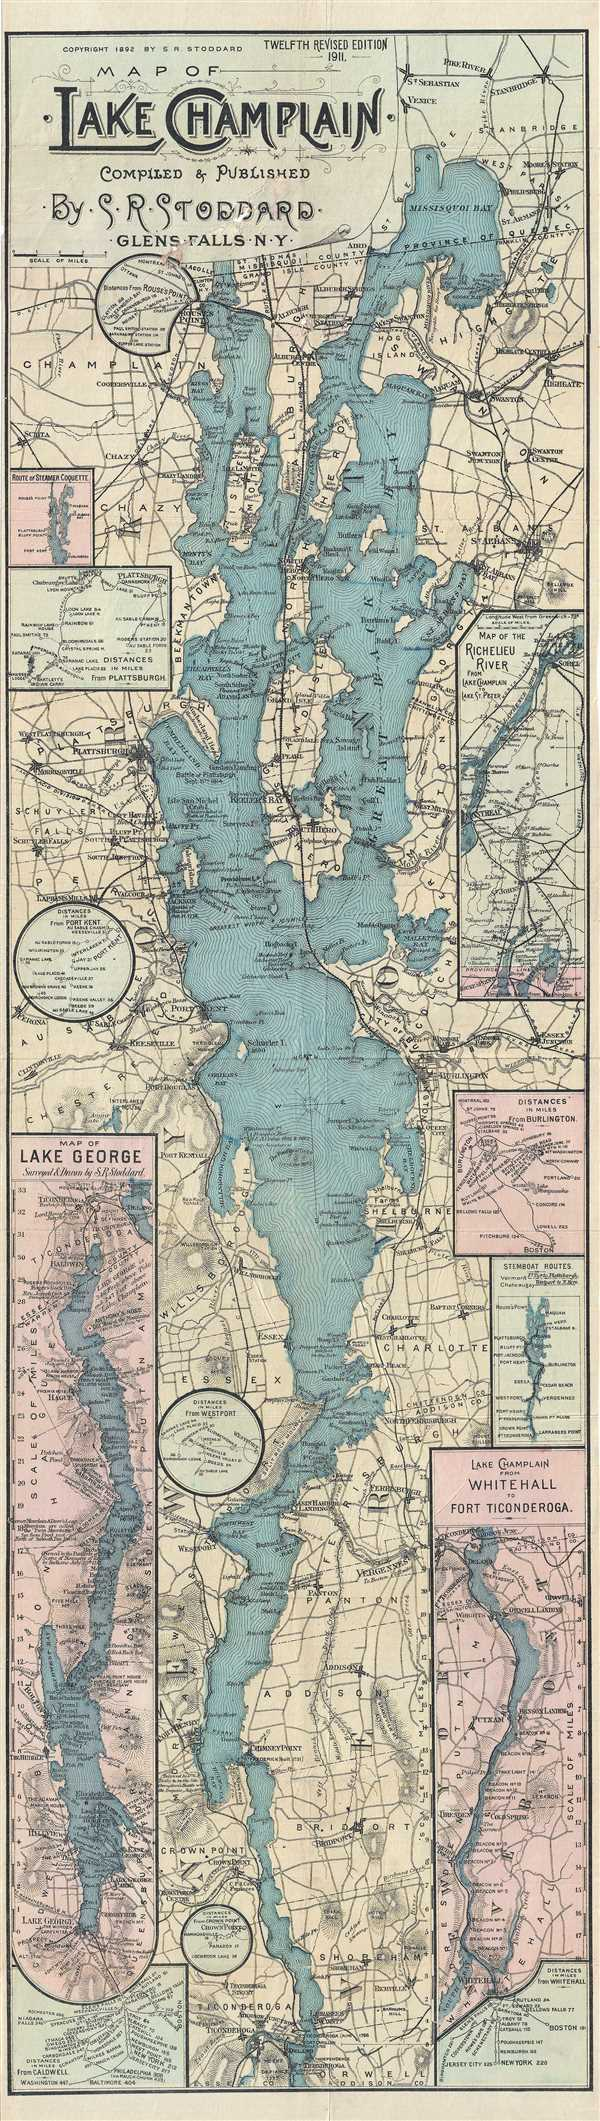 Map of Lake Champlain.  Compiled & Published by S. R. Stoddard.  Glens Falls, NY.